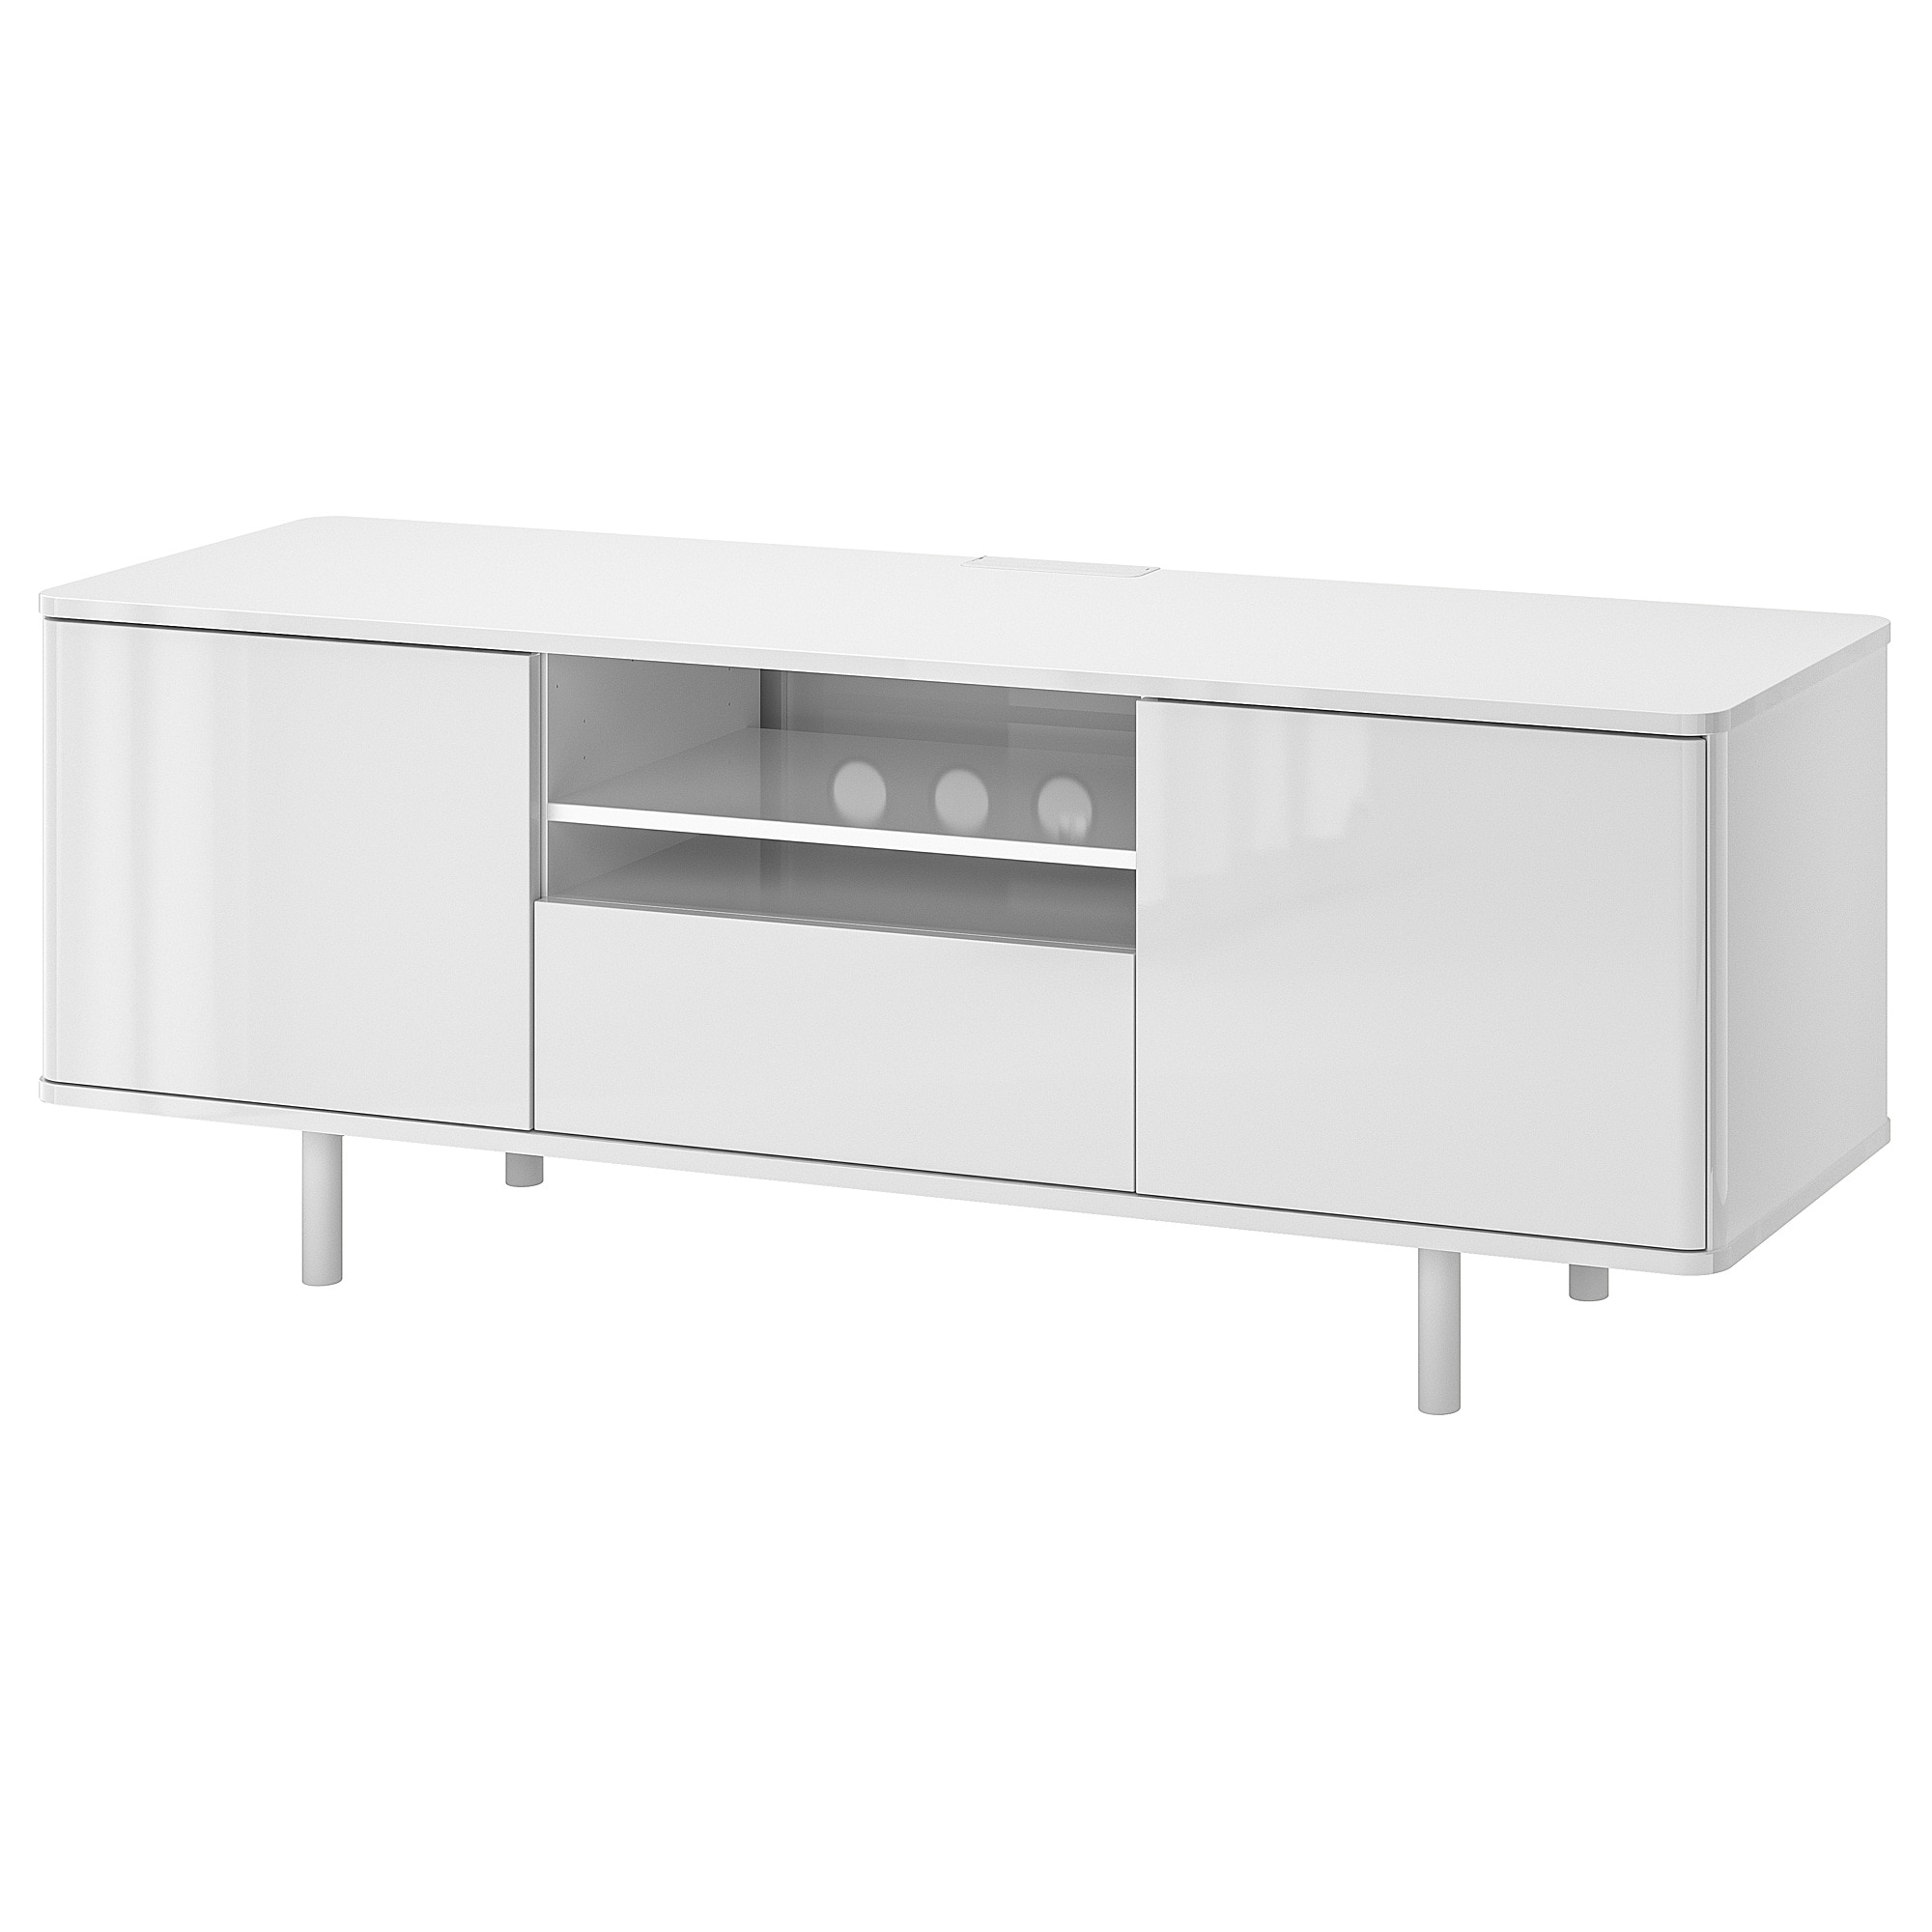 Ikea Tv Sideboard Mostorp Tv Meubel Wit Hoogglans Wit